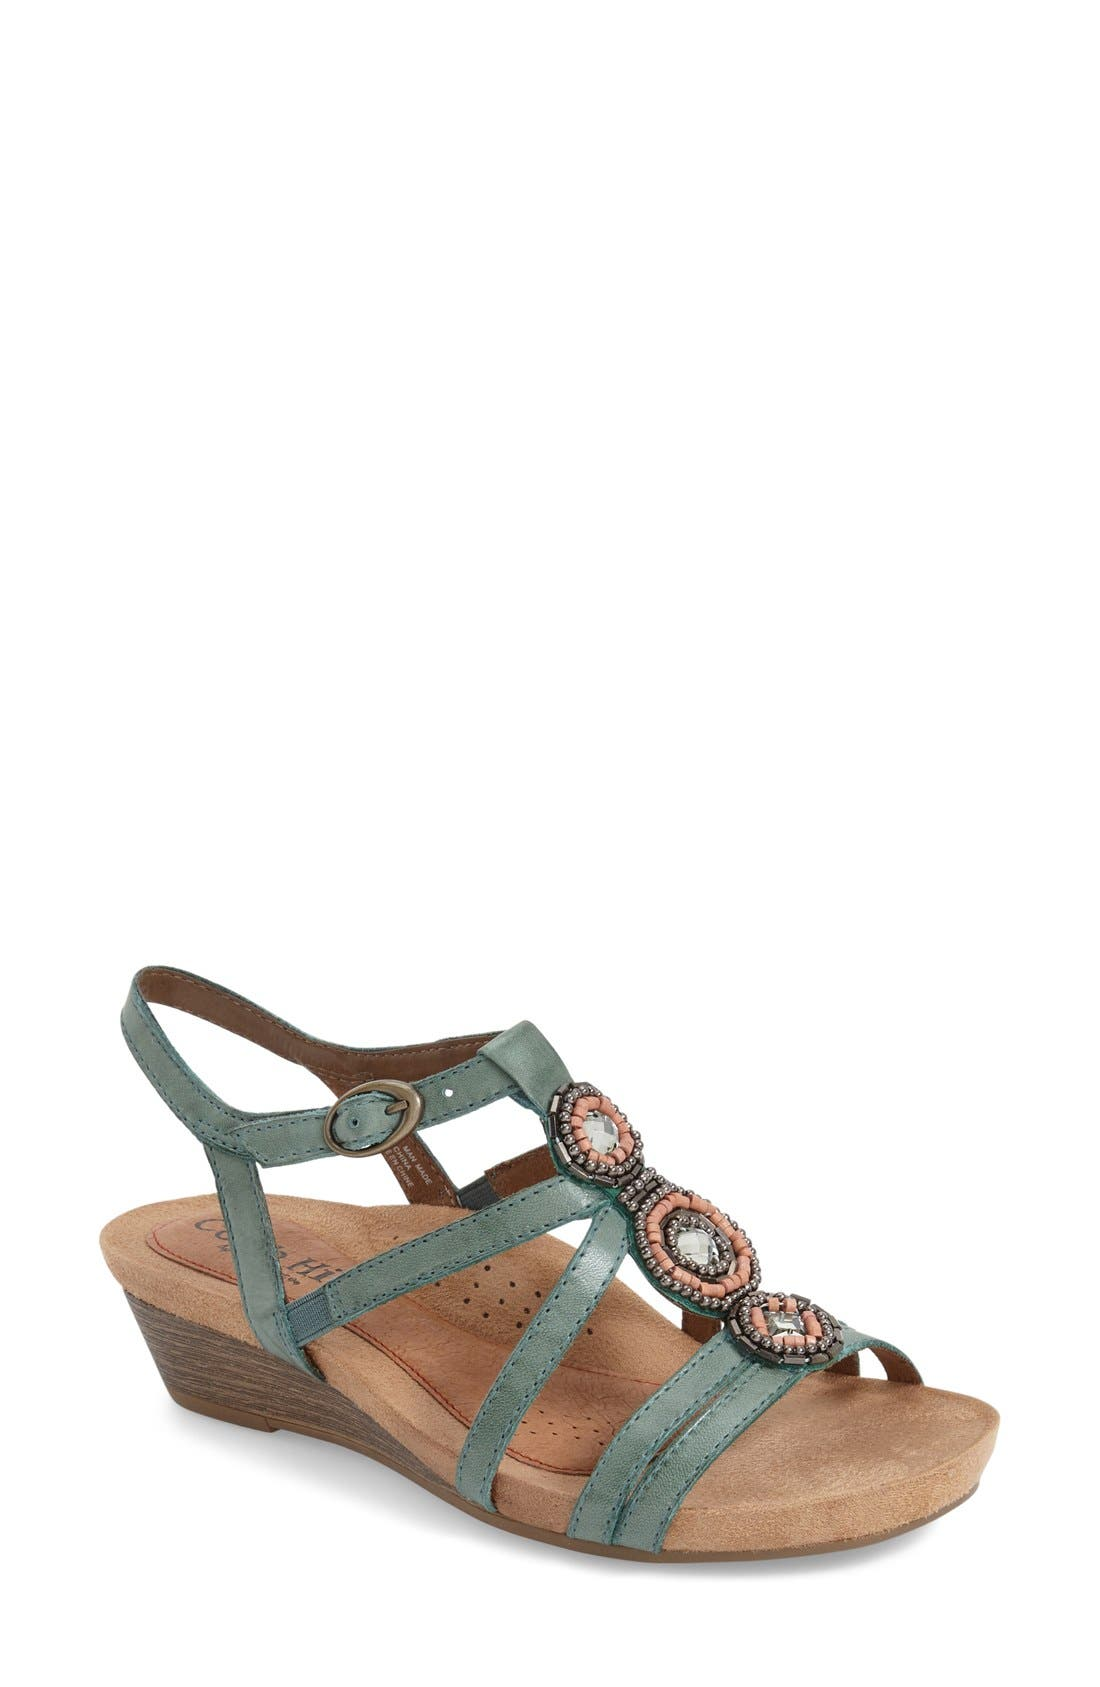 Main Image - Rockport Cobb Hill 'Hannah' Leather Sandal (Women)